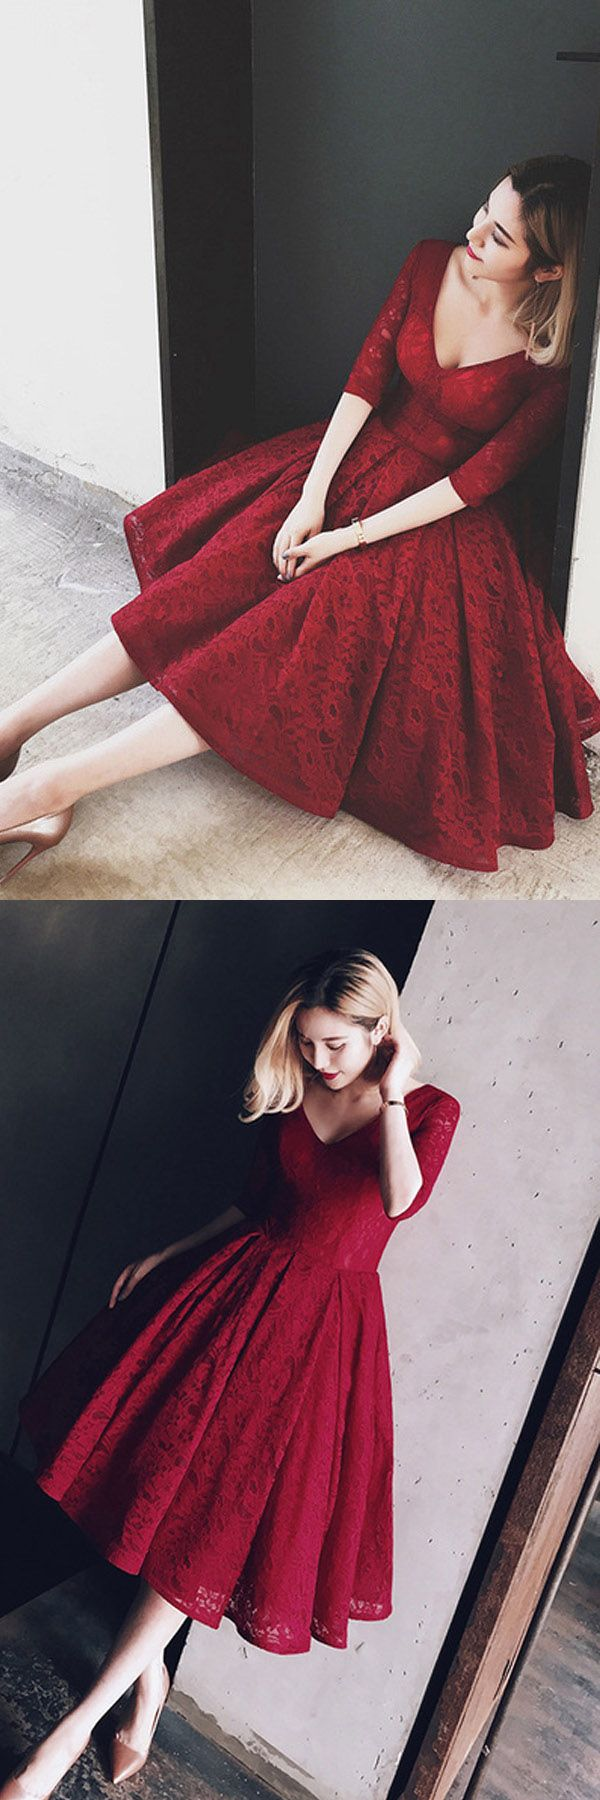 V Neck Half Sleeves Burgundy Lace Homecoming Dress Short Prom Dress,Homecoming Dresses,Short Prom Dresses,Prom Dresses,Party Dresses,Graduation Dresses